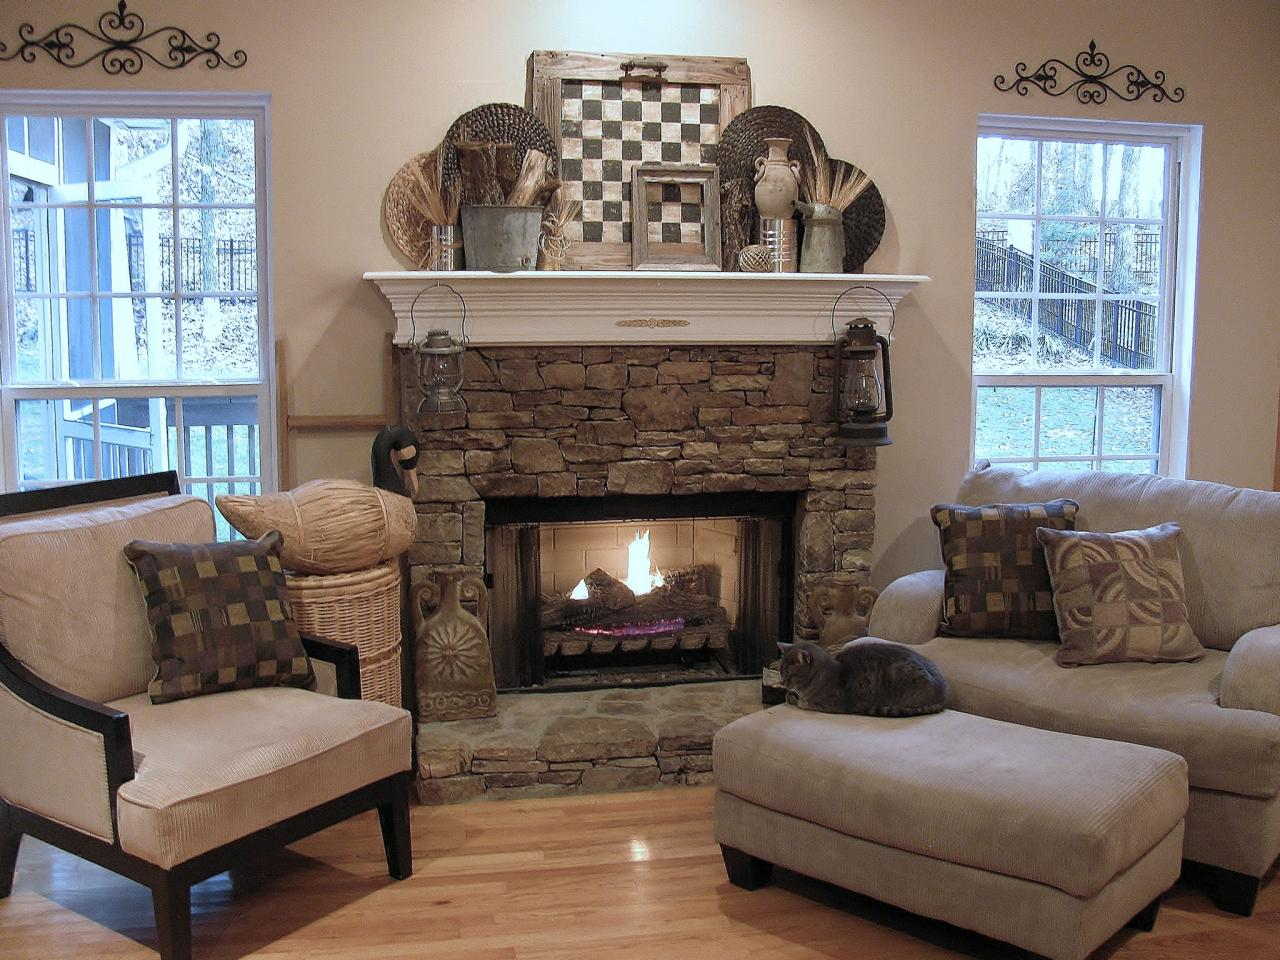 Rustic Mantel Decor Made Of Stone Decorated With Cozy Armchairs Plus Comfy Single Couch Completed